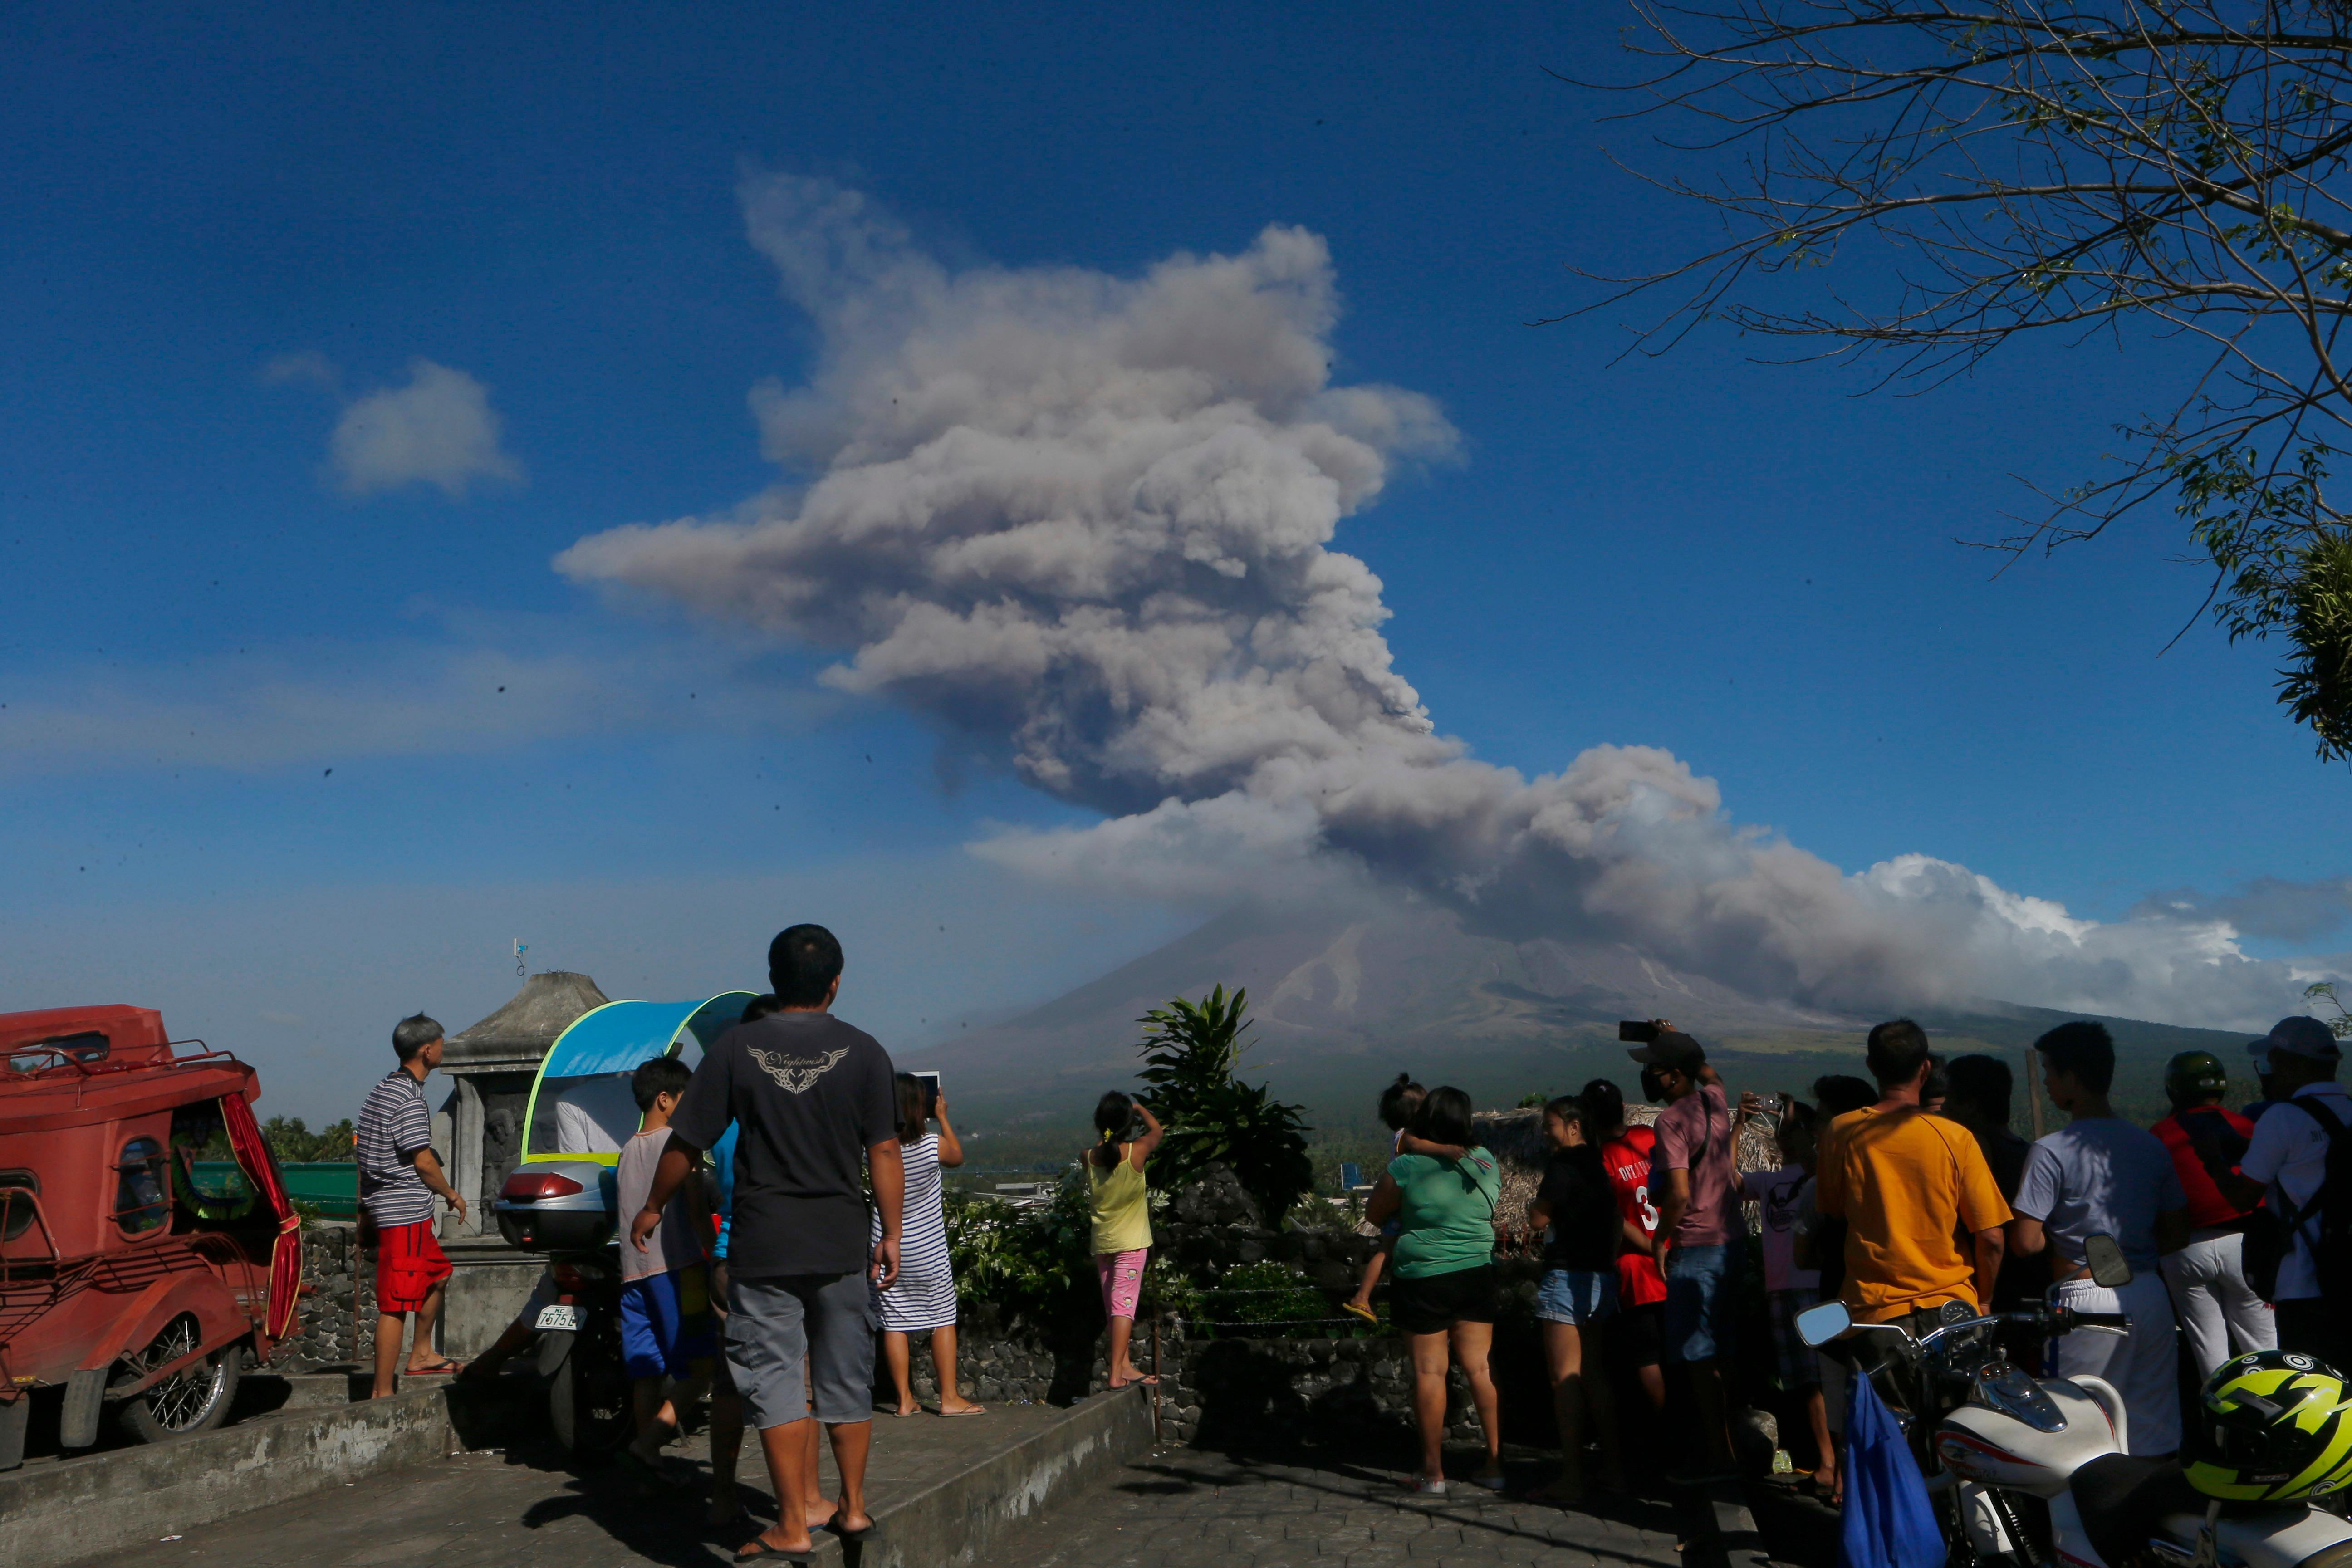 Residents watch as Mayon volcano spews ash anew during its eruption for the second straight day Tuesday, Jan. 23, 2018 as seen from Legazpi city, Albay province, southeast of Manila, Philippines. The Philippines' most active volcano ejected a huge column of lava fragments, ash and smoke in another thunderous explosion at dawn Tuesday, sending thousands of villagers back to evacuation centers and prompting a warning that a violent eruption may be imminent. (AP Photo/Bullit Marquez)